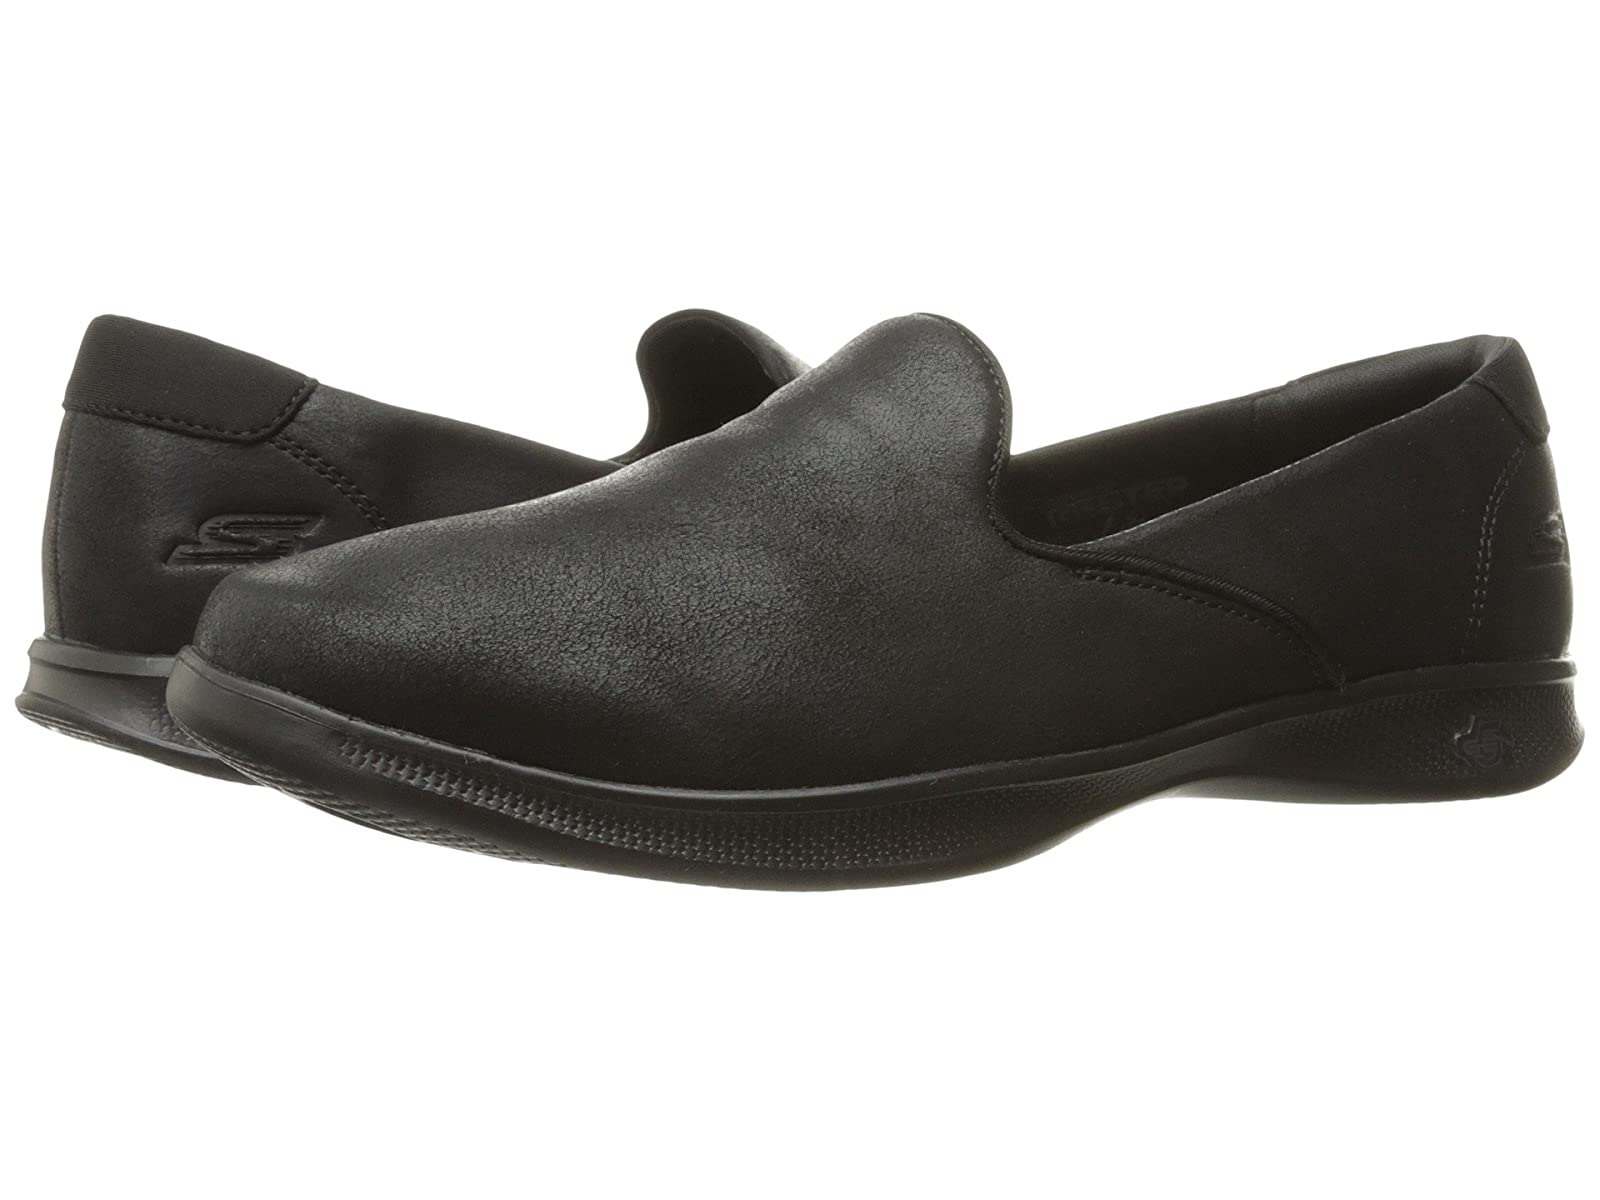 SKECHERS Performance Go Step Lite - DeterminedCheap and distinctive eye-catching shoes